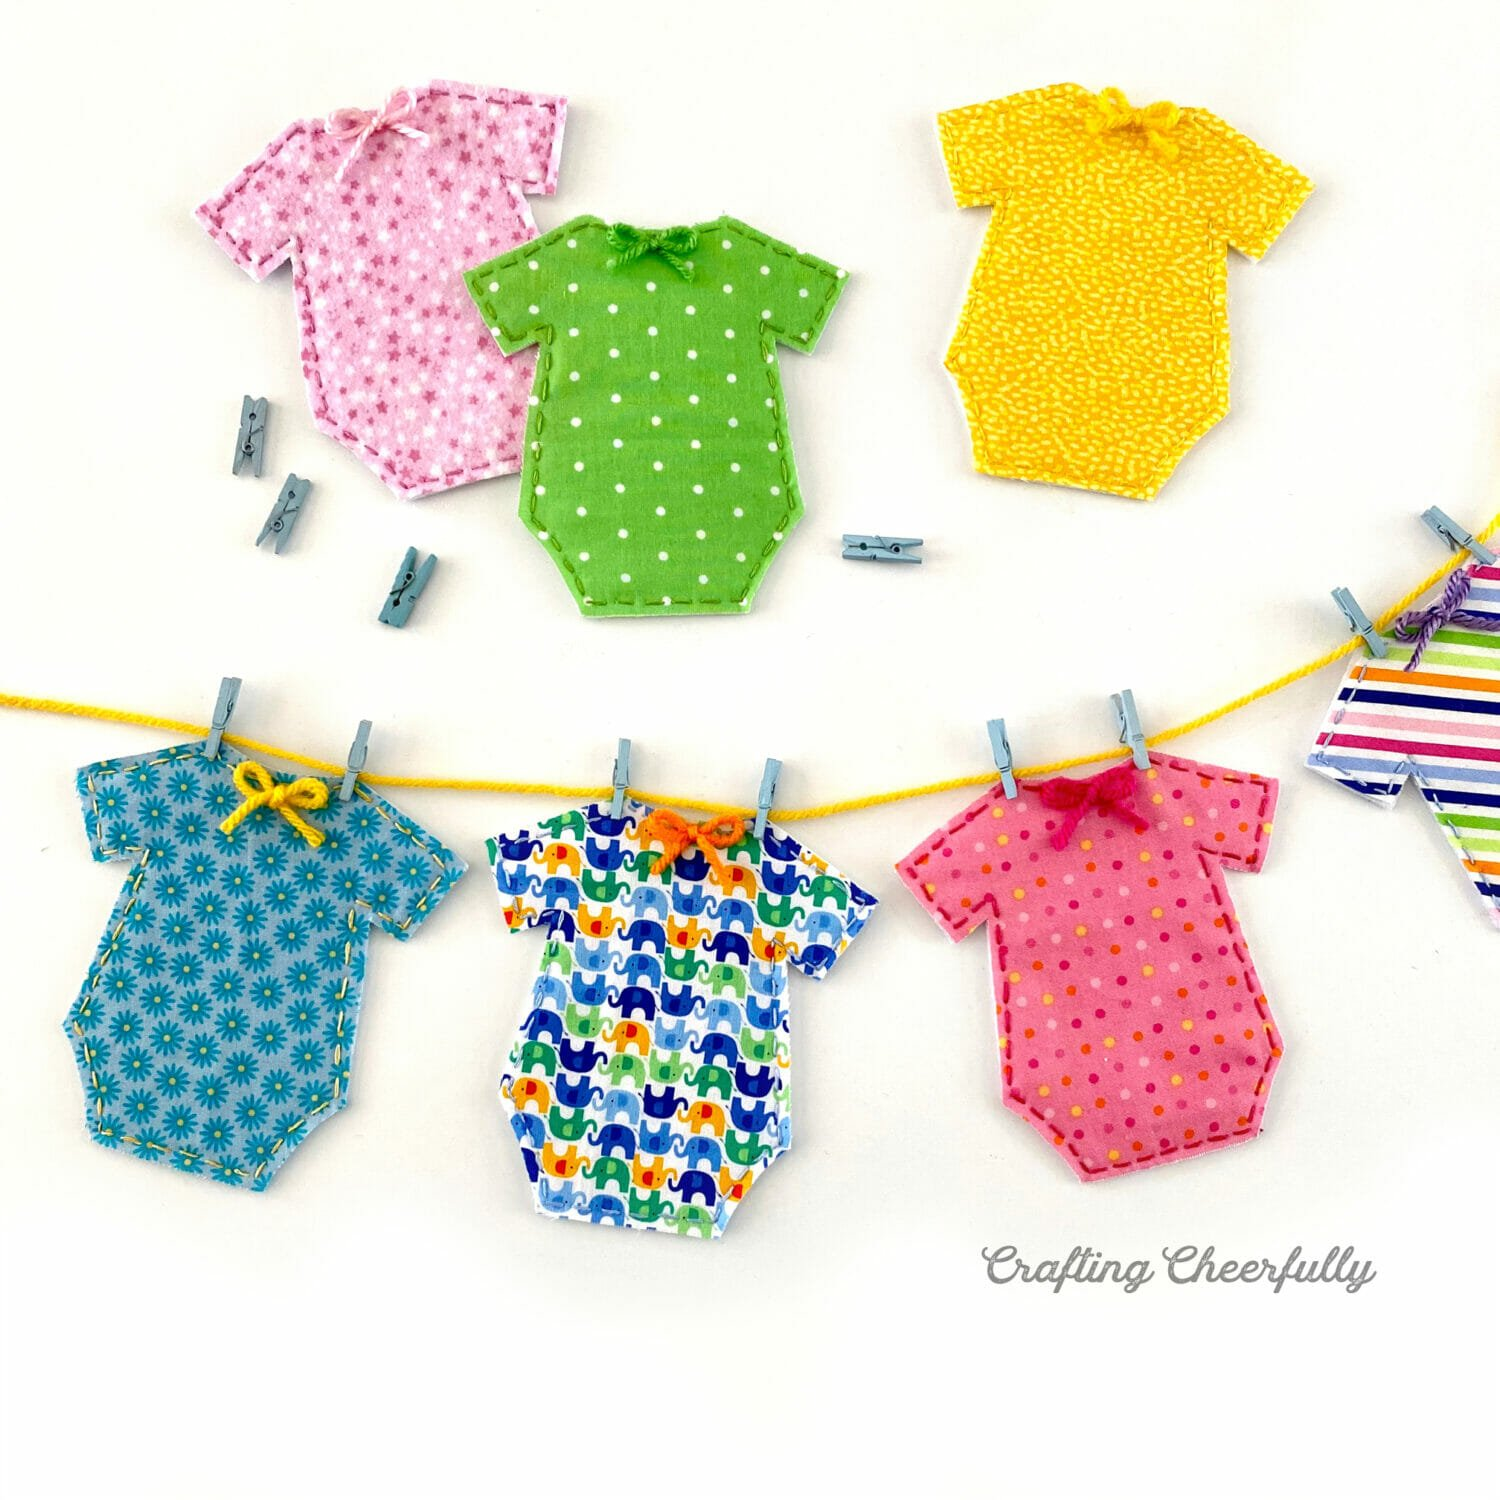 Tiny fabric onesies hang on yarn with mini clothespins to form a baby shower banner.